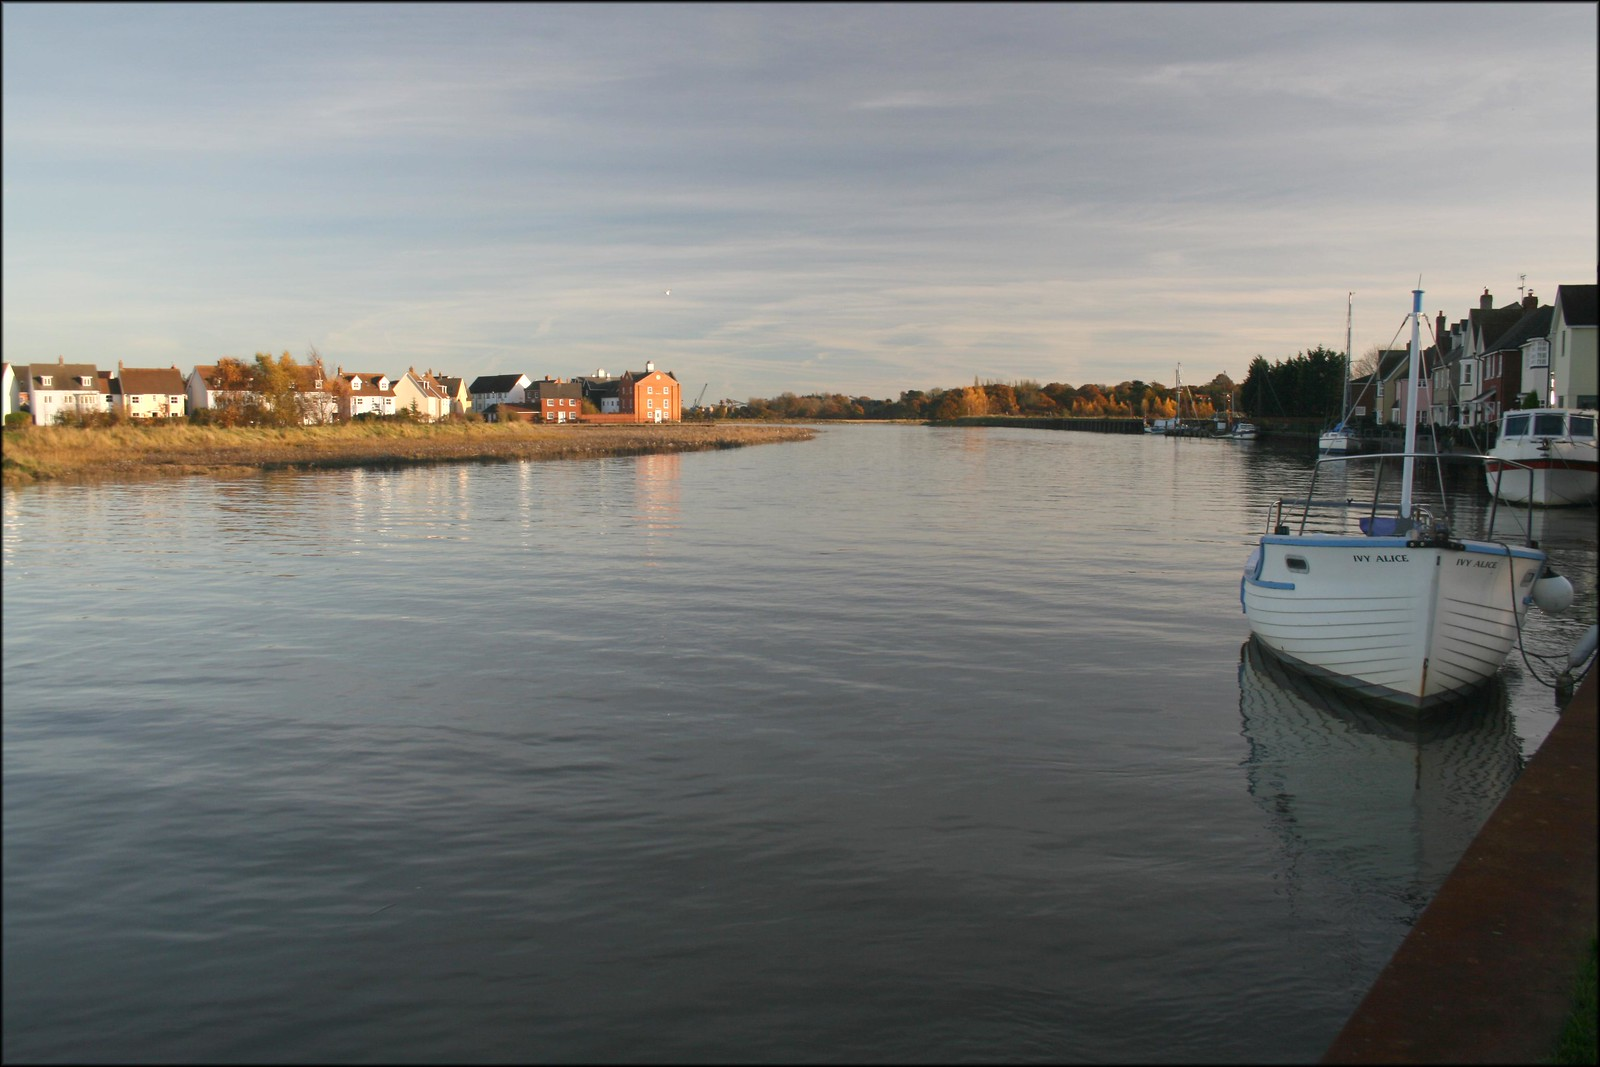 The River Colne at Rowhedge Rowhedge is on the right hand side of the river here whilst Wivenhoe is on the left hand bank.